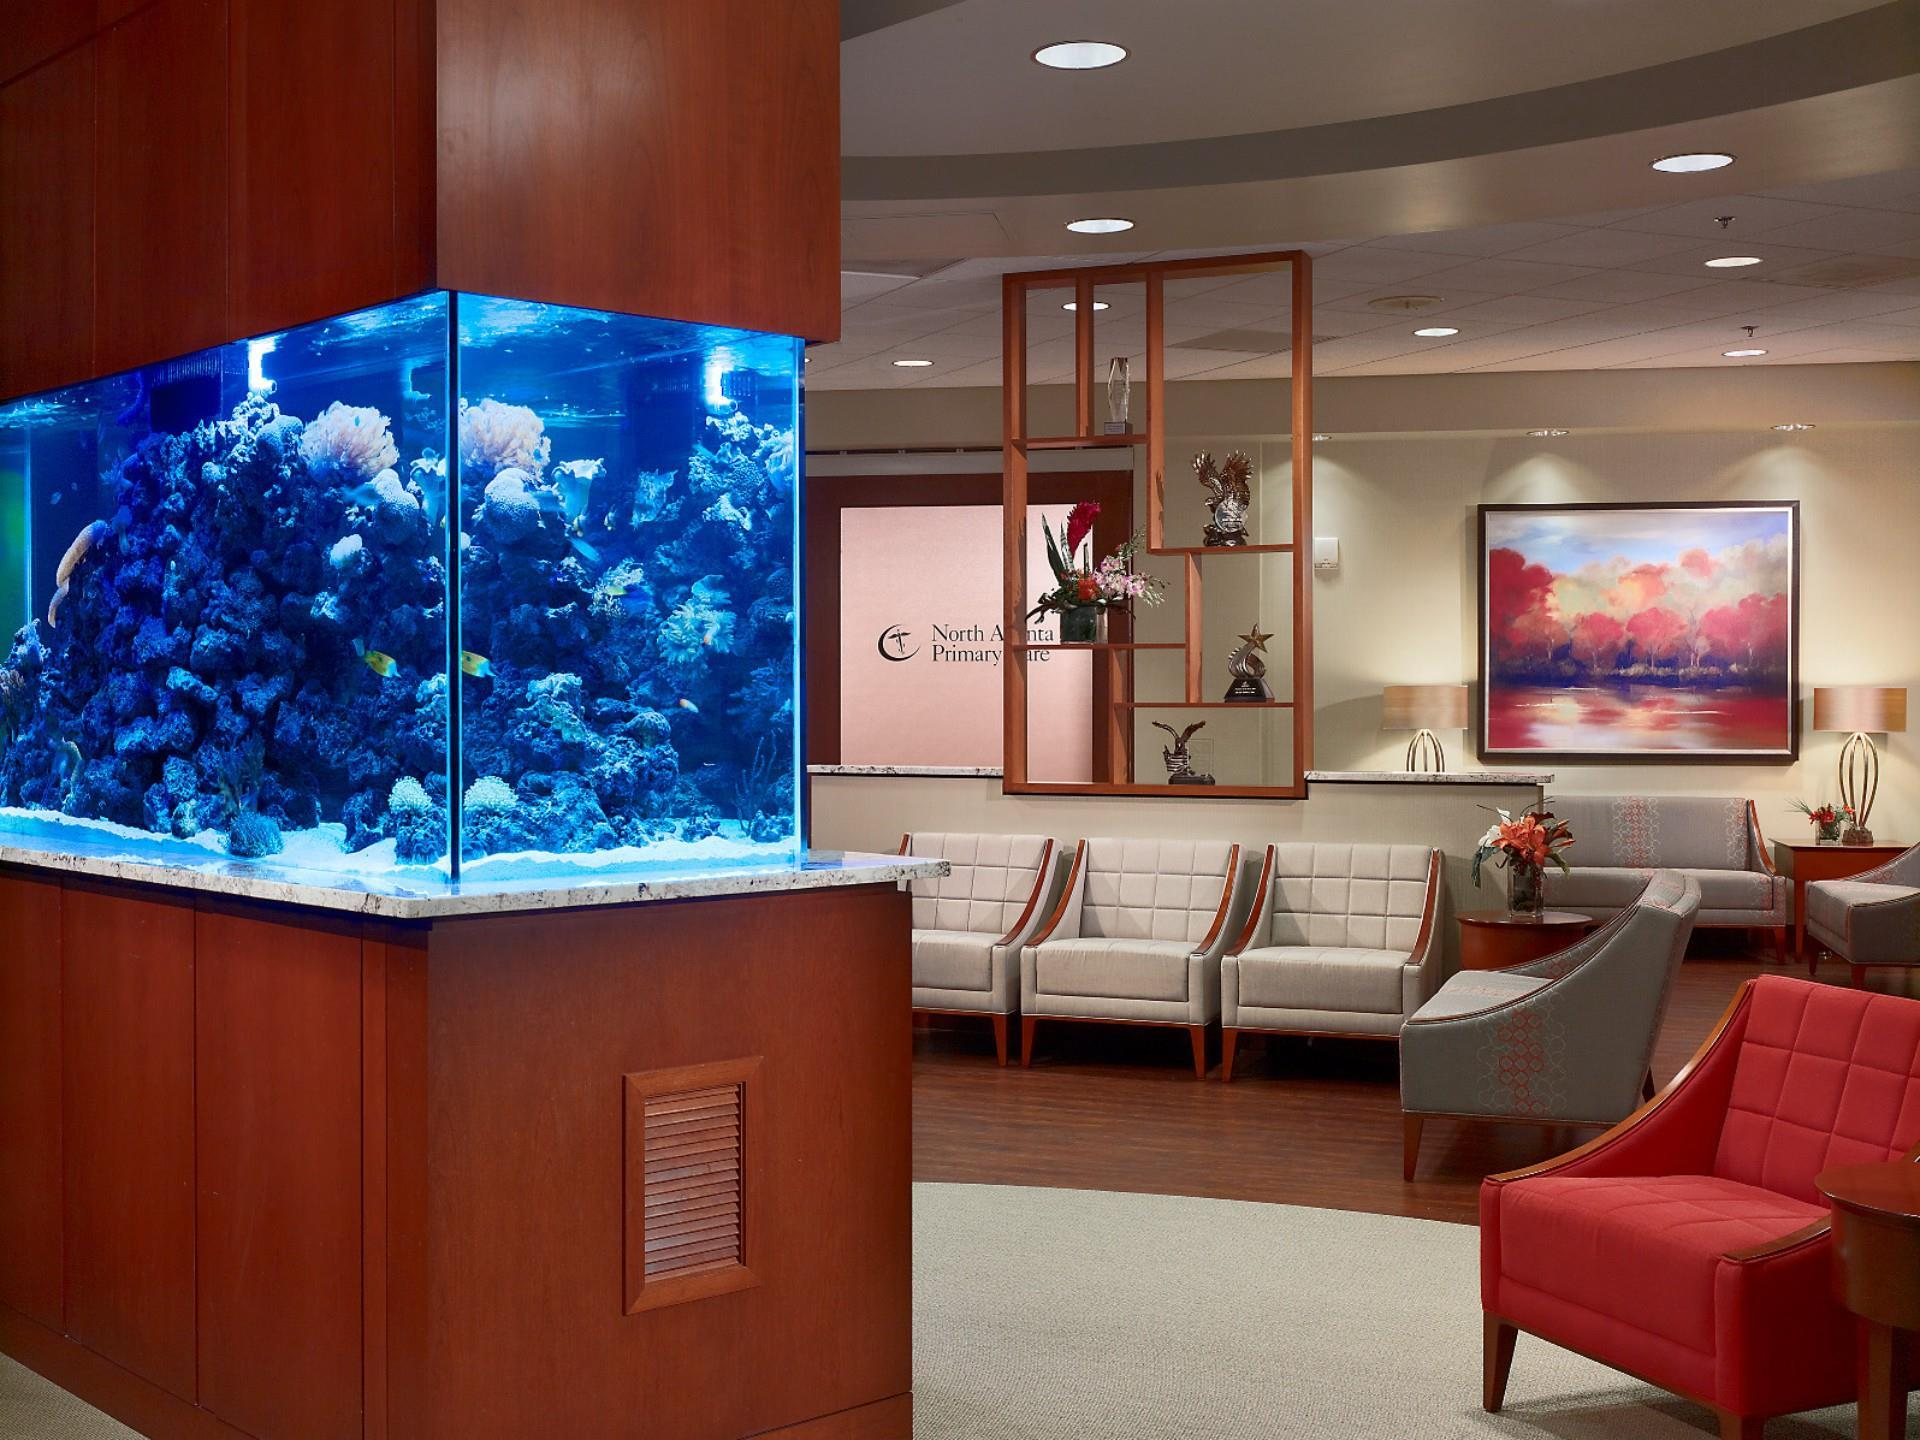 view with fish tank and wood paneling with arm chairs and modern decoritve scultpure with plants on shelves waiting area